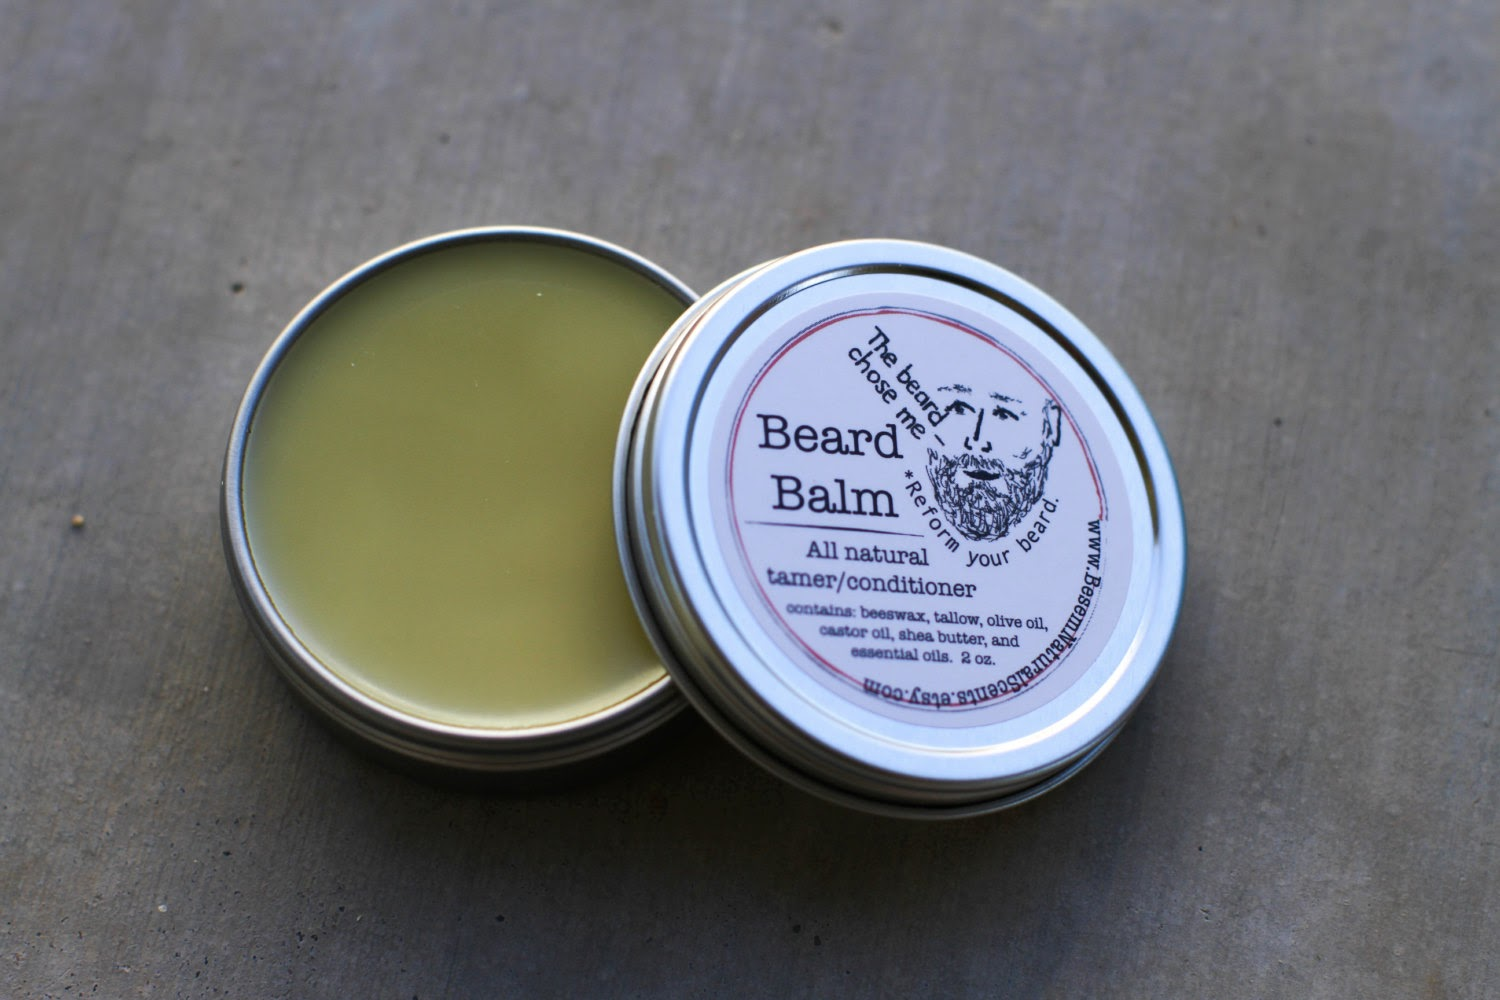 https://www.etsy.com/listing/164106968/new-all-natural-beard-balm-tame-and